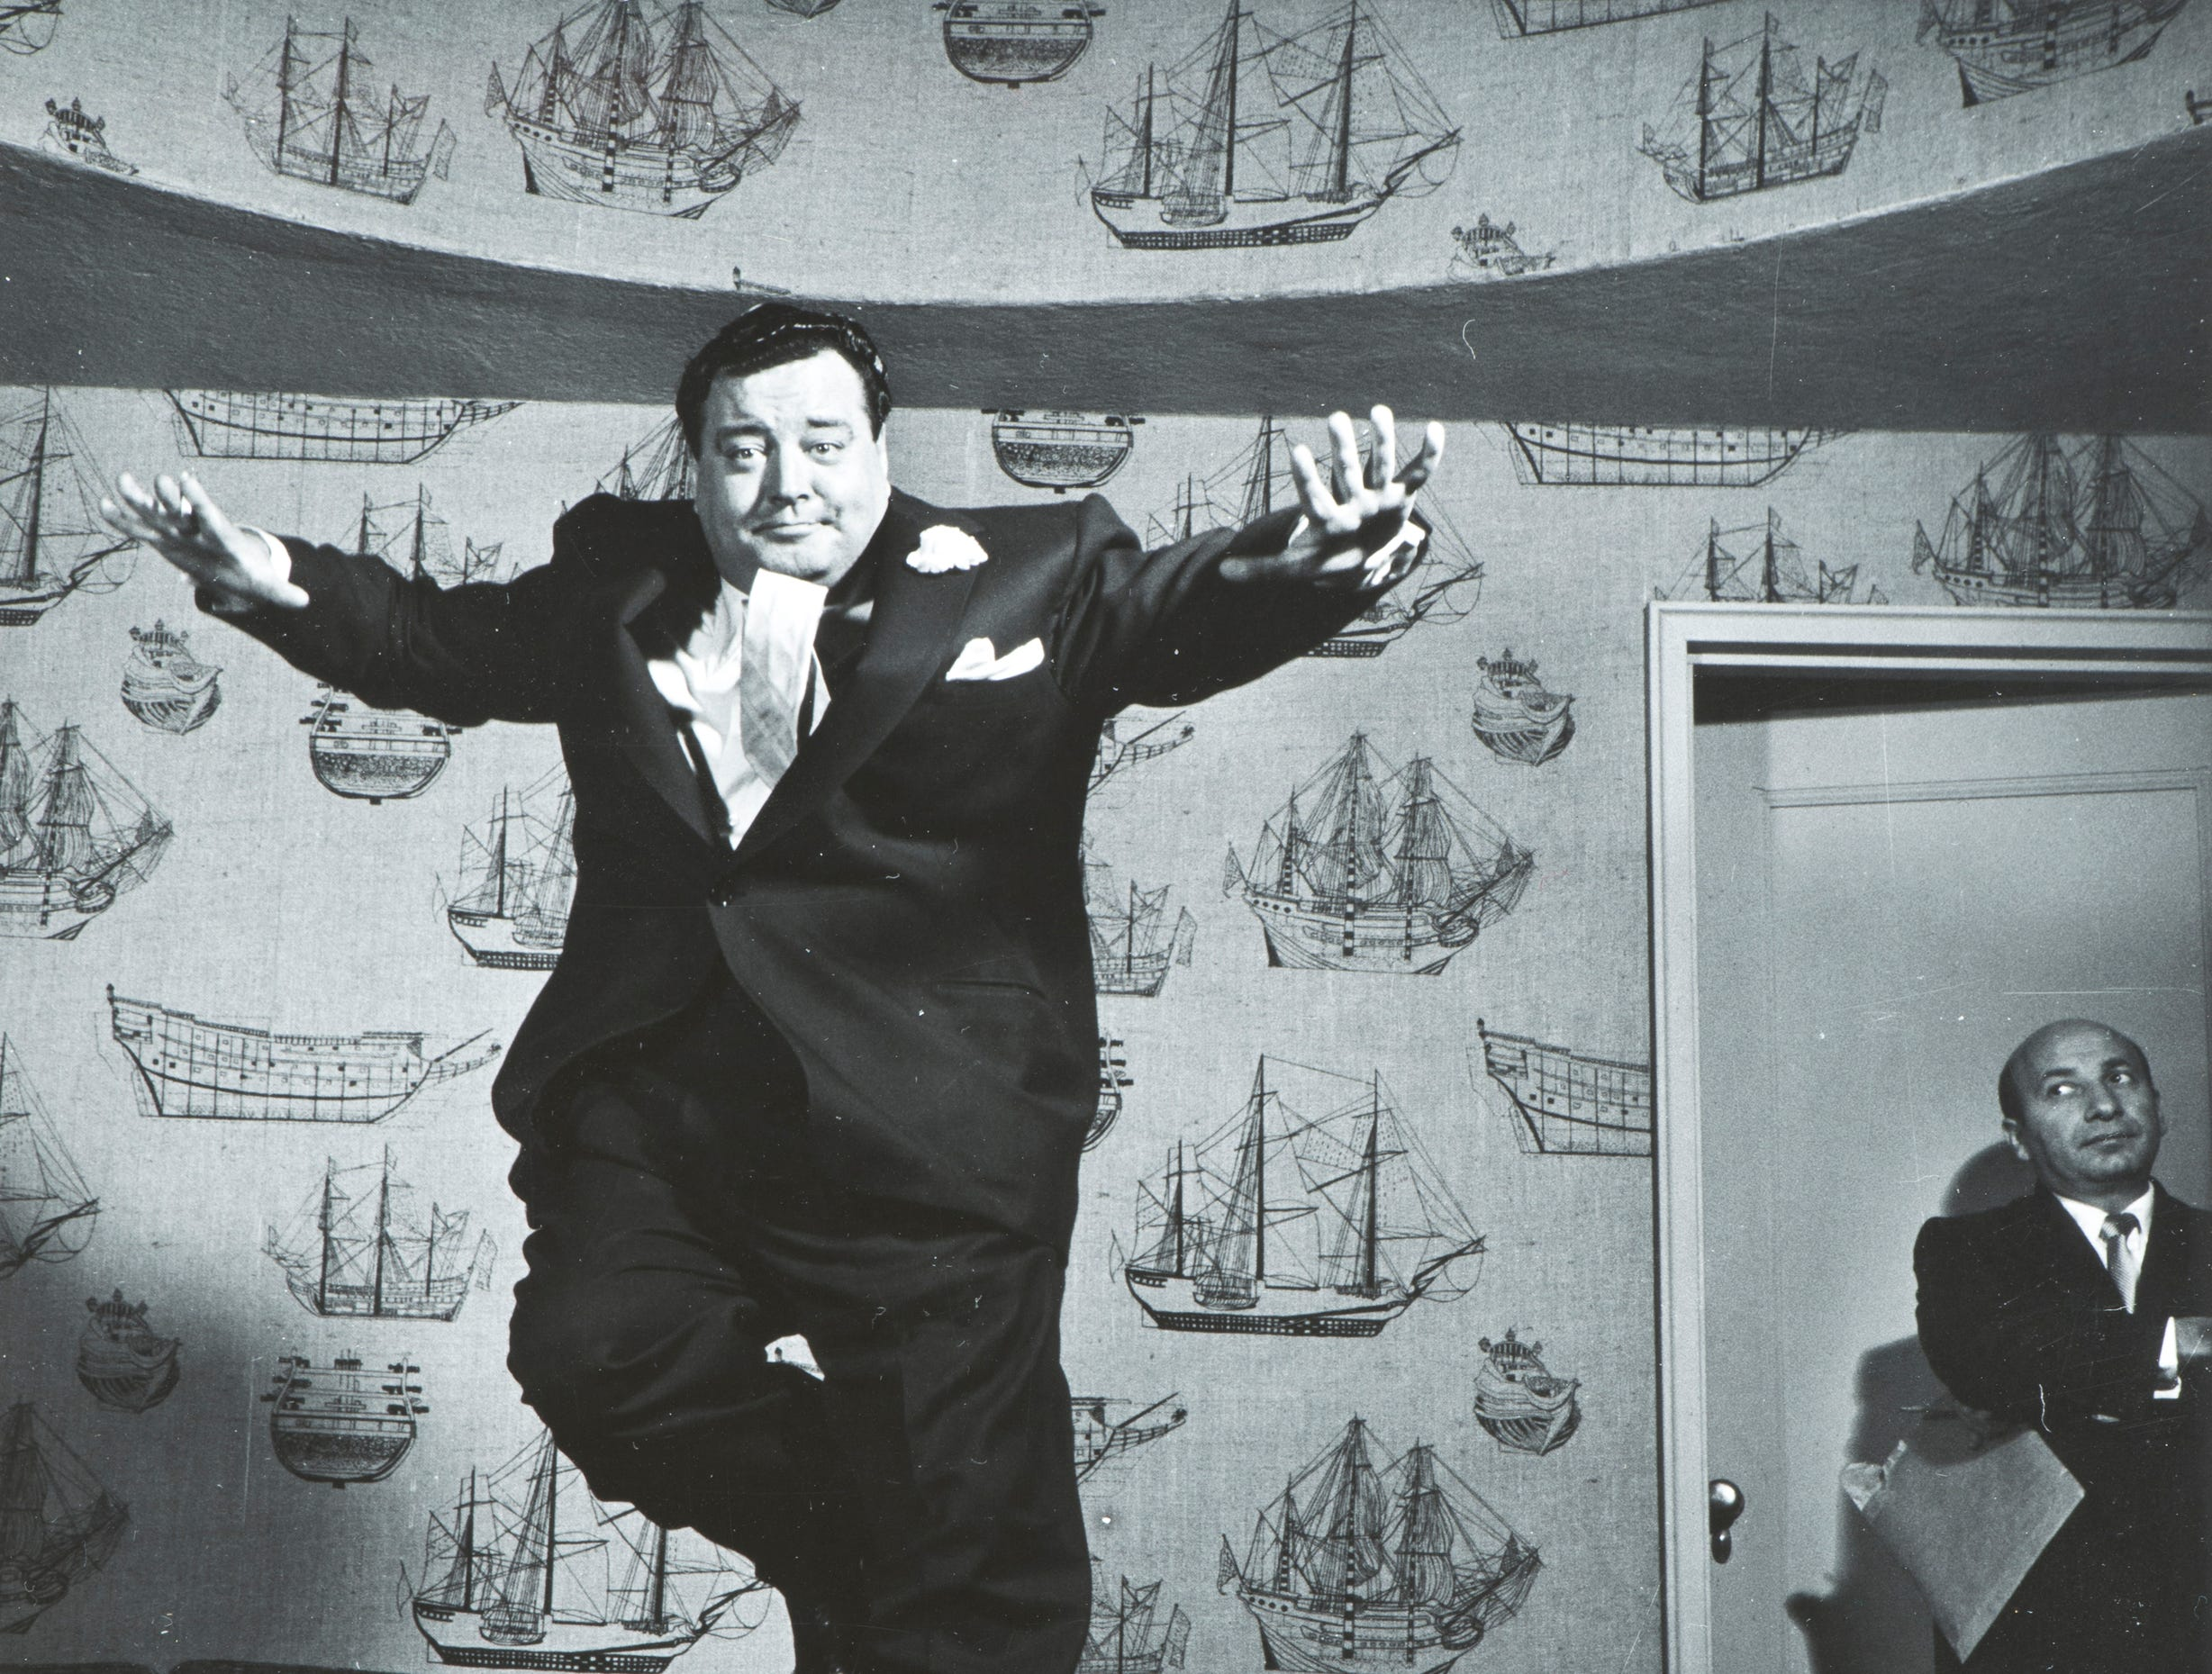 """Philippe Halsman's """"Jackie Gleason, 1955'' is a gelatin silver print on paper, part of the exhibit """"Celebrity Culture'' at  Zimmerli Art Museum at Rutgers University, New Brunswick."""